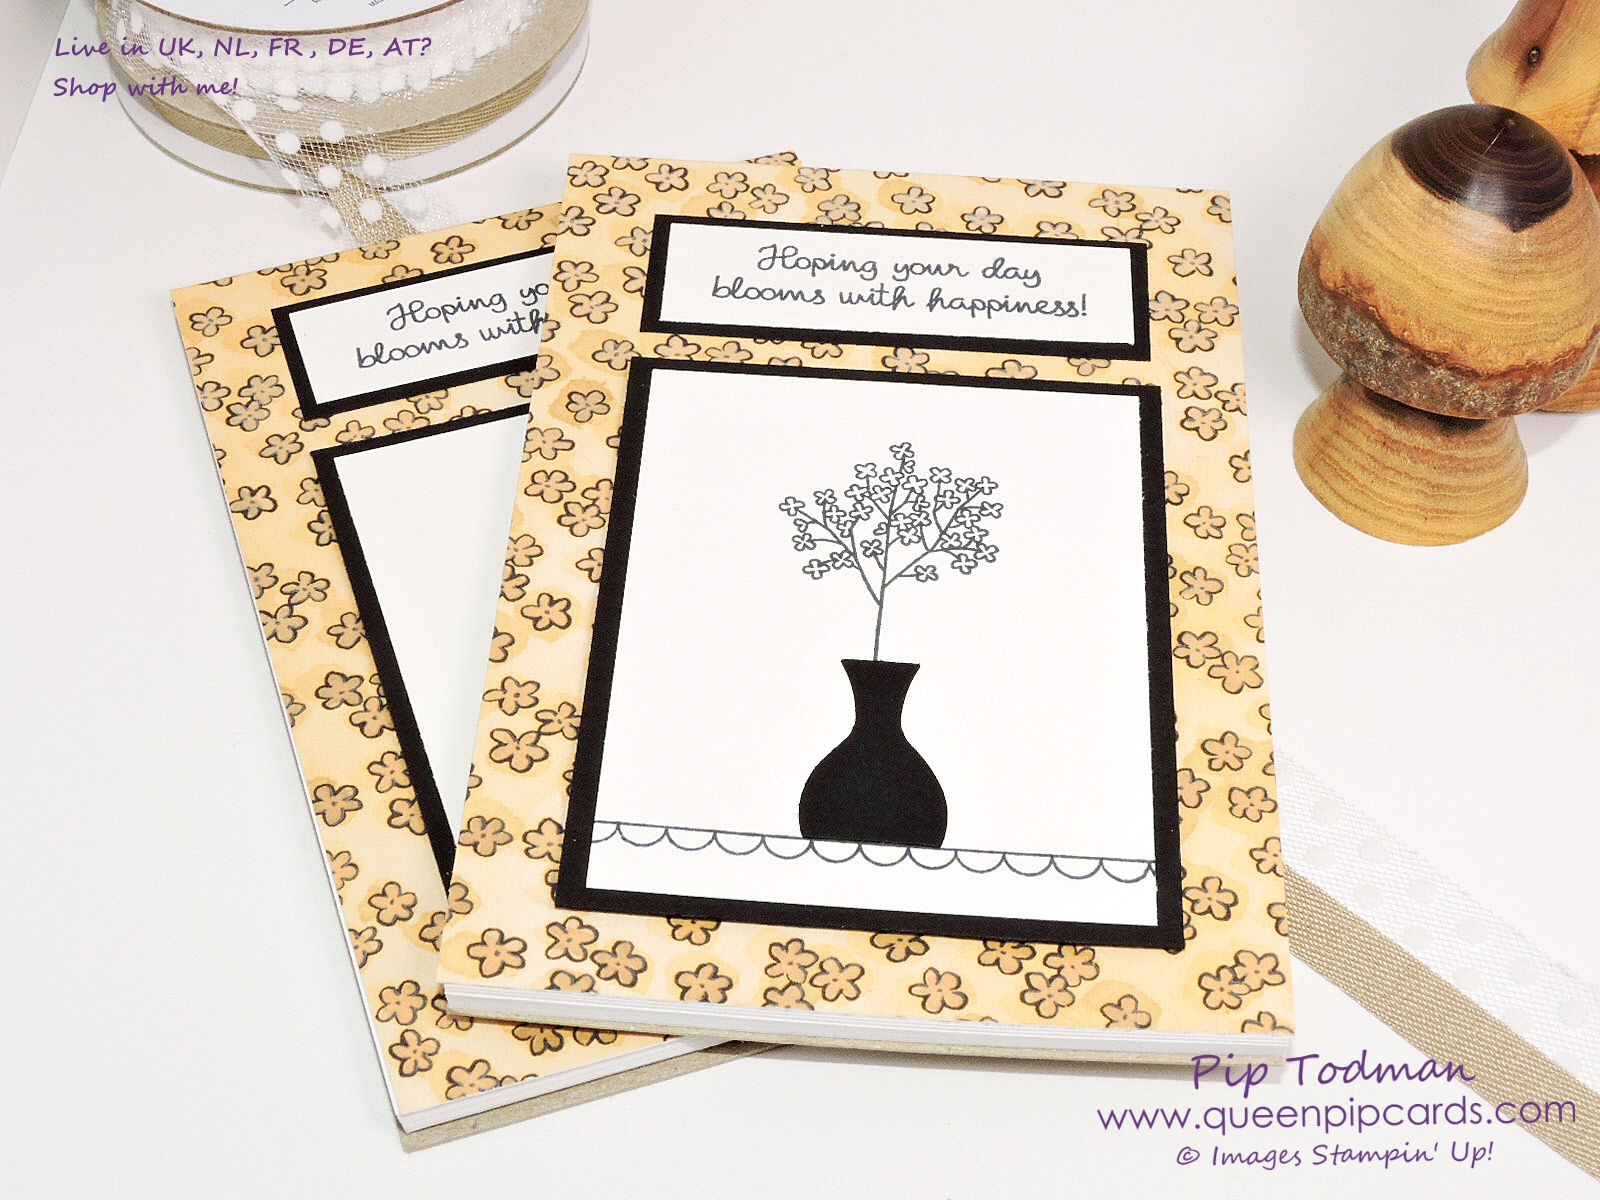 Easy Notepad Idea with Varied Vases! So cute but so easy to make. Quick, easy but stylish gifts for my customers. Paired with Share What You Love papers for that extra luxury feel! All products available from my online store here: http://bit.ly/QPCShop Pip Todman Crafty Coach & Stampin' Up! Top UK Demonstrator Queen Pip Cards www.queenpipcards.com Facebook: fb.me/QueenPipCards #queenpipcards #inspiringyourcreativity #stampinup #papercraft